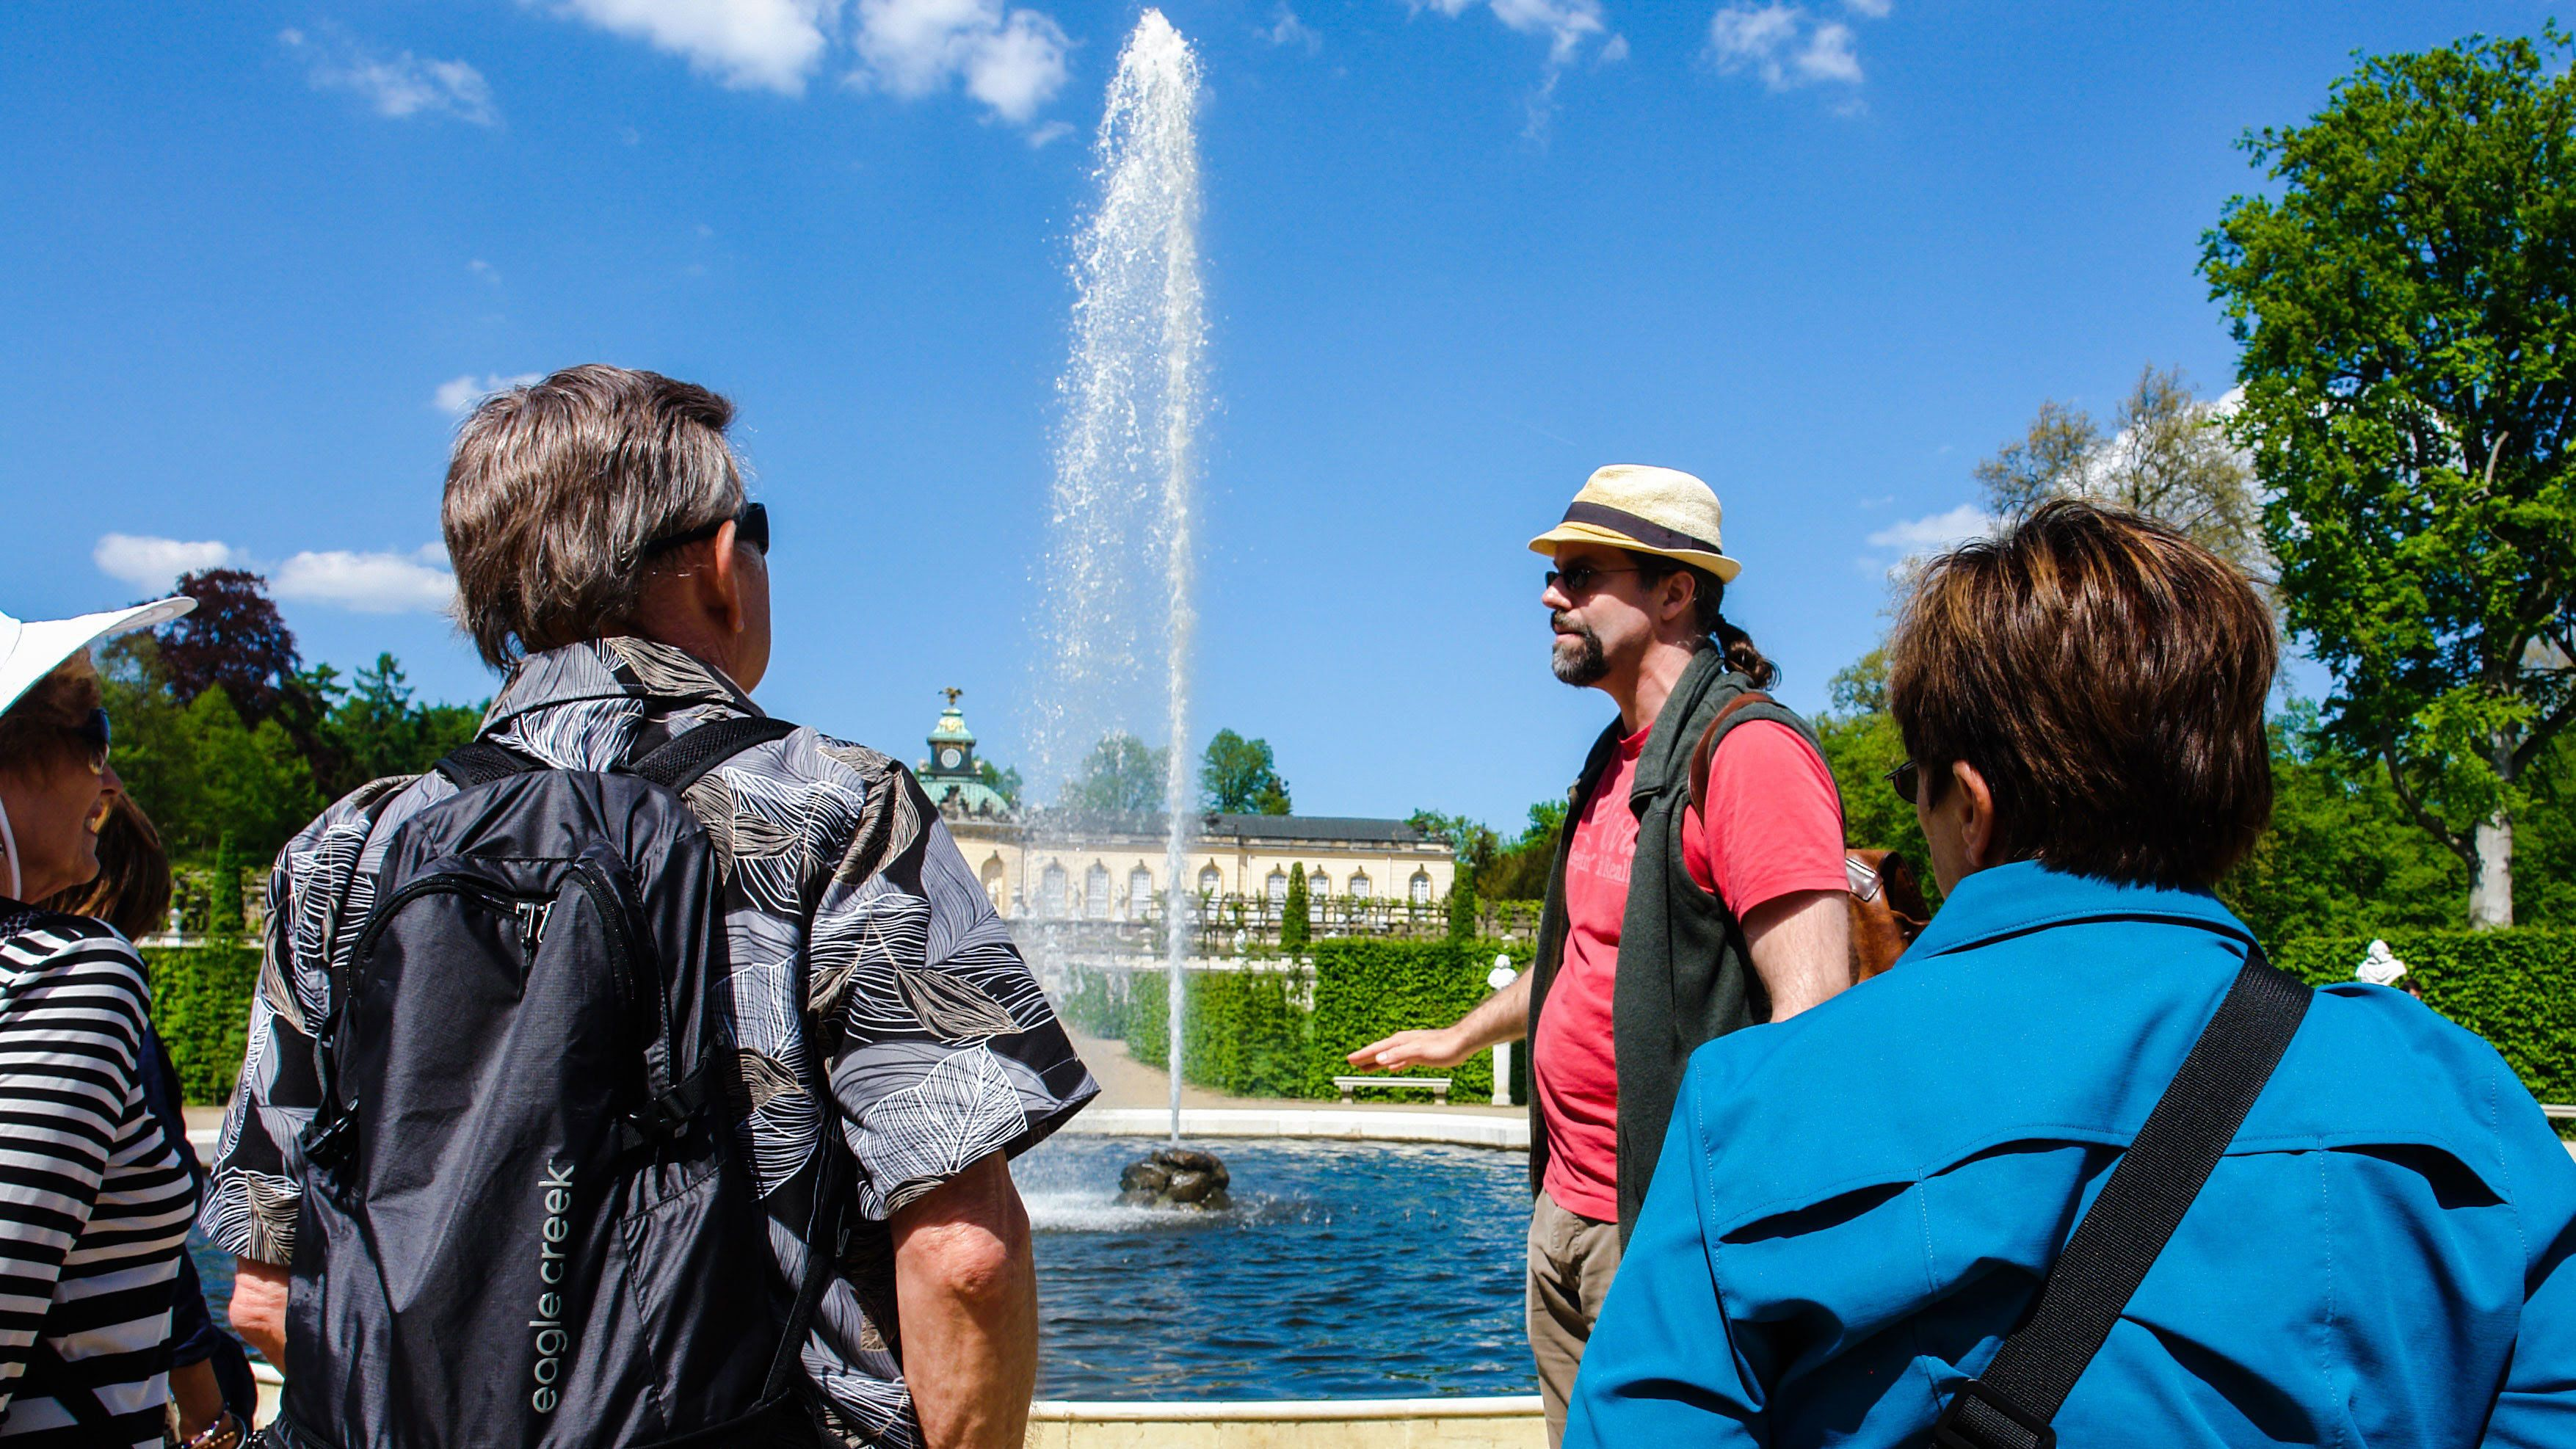 Tour guide and group at a fountain in Potsdam